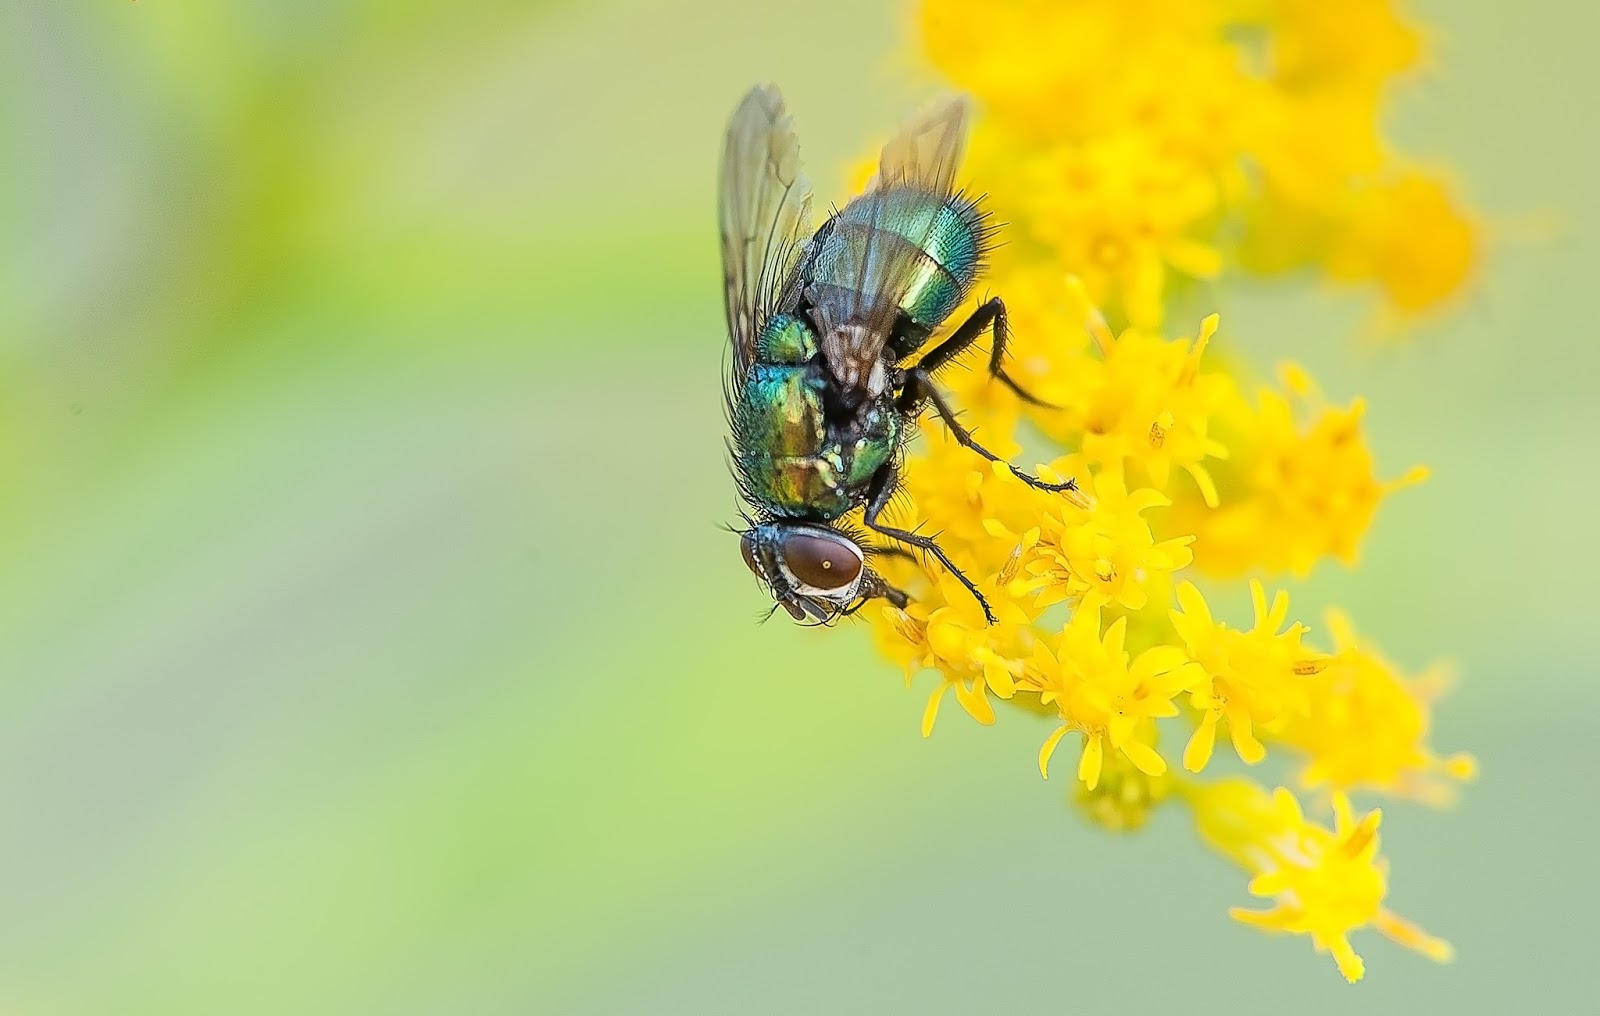 A common fly pollinating a flower.